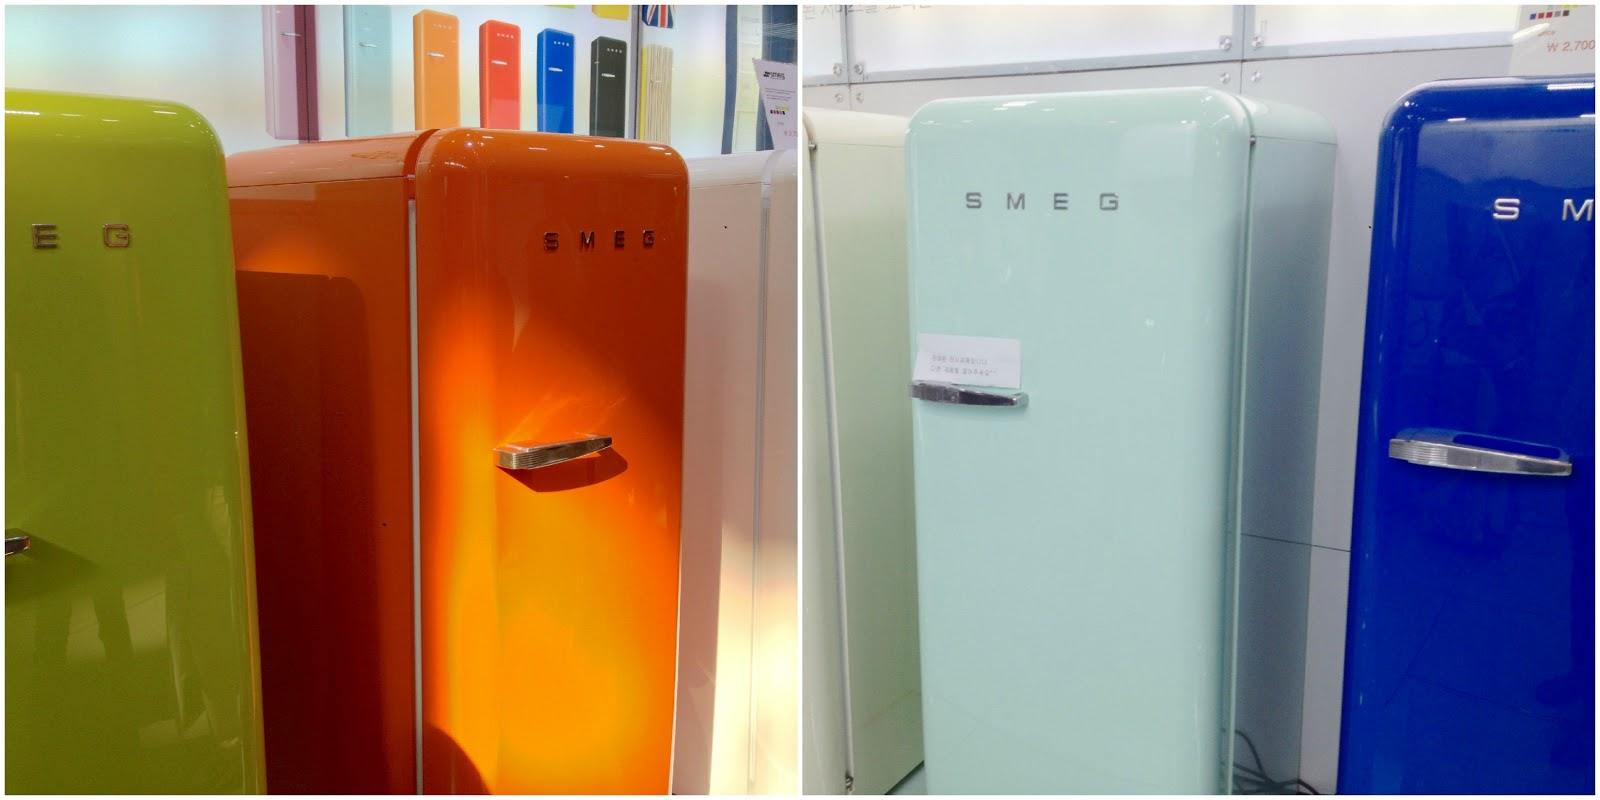 best frigo smeg colorato images. Black Bedroom Furniture Sets. Home Design Ideas